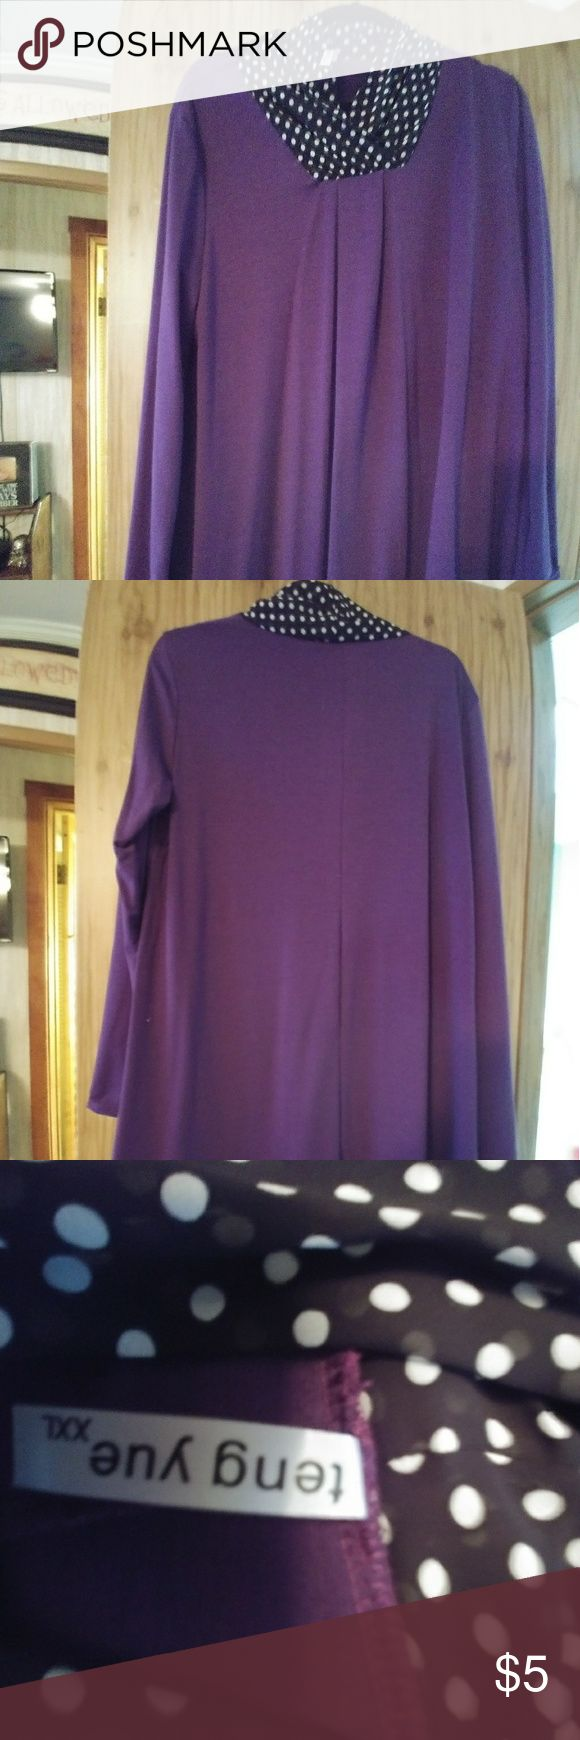 Women's top - tunic style Purple with black and white polka dot neck. Ordered a 2x but it runs small. True size should be L. Worn once. Full sleeves. Smoke free home. Looks cute with leggings. teng yu Tops Tunics